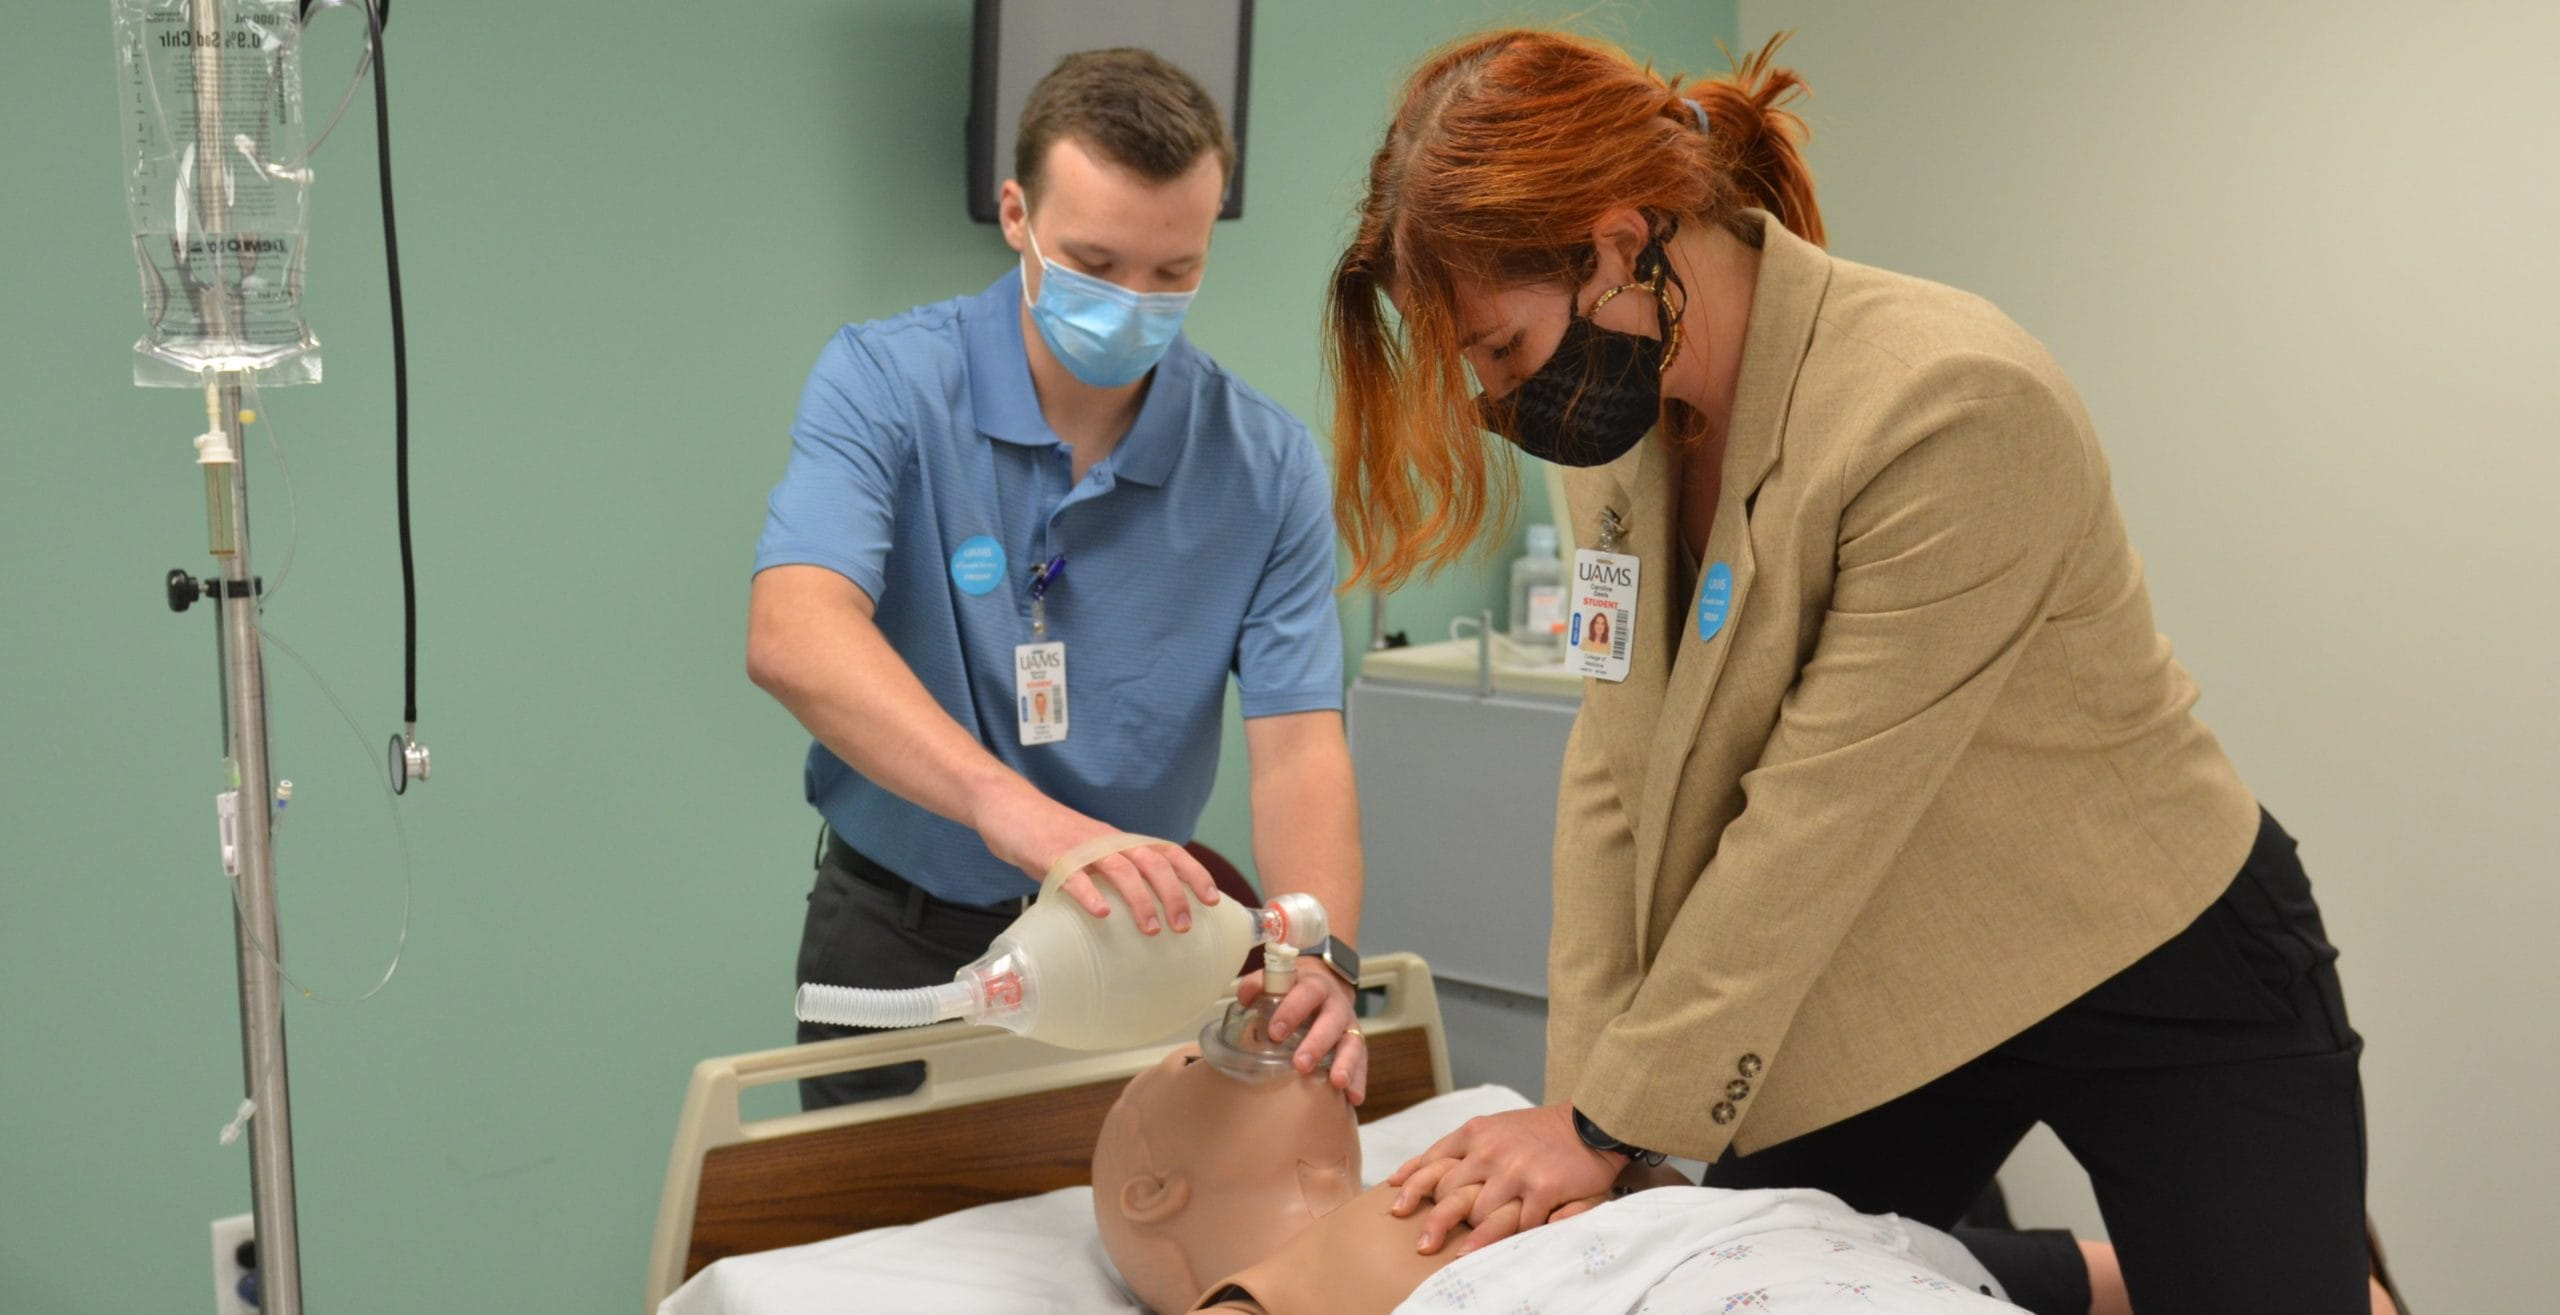 Spencer Parnell and Caroline Geels, first-year students in the College of Medicine's new 3-year M.D. program, practice CPR on a training manikin at the UAMS Northwest Regional Campus in Fayetteville.